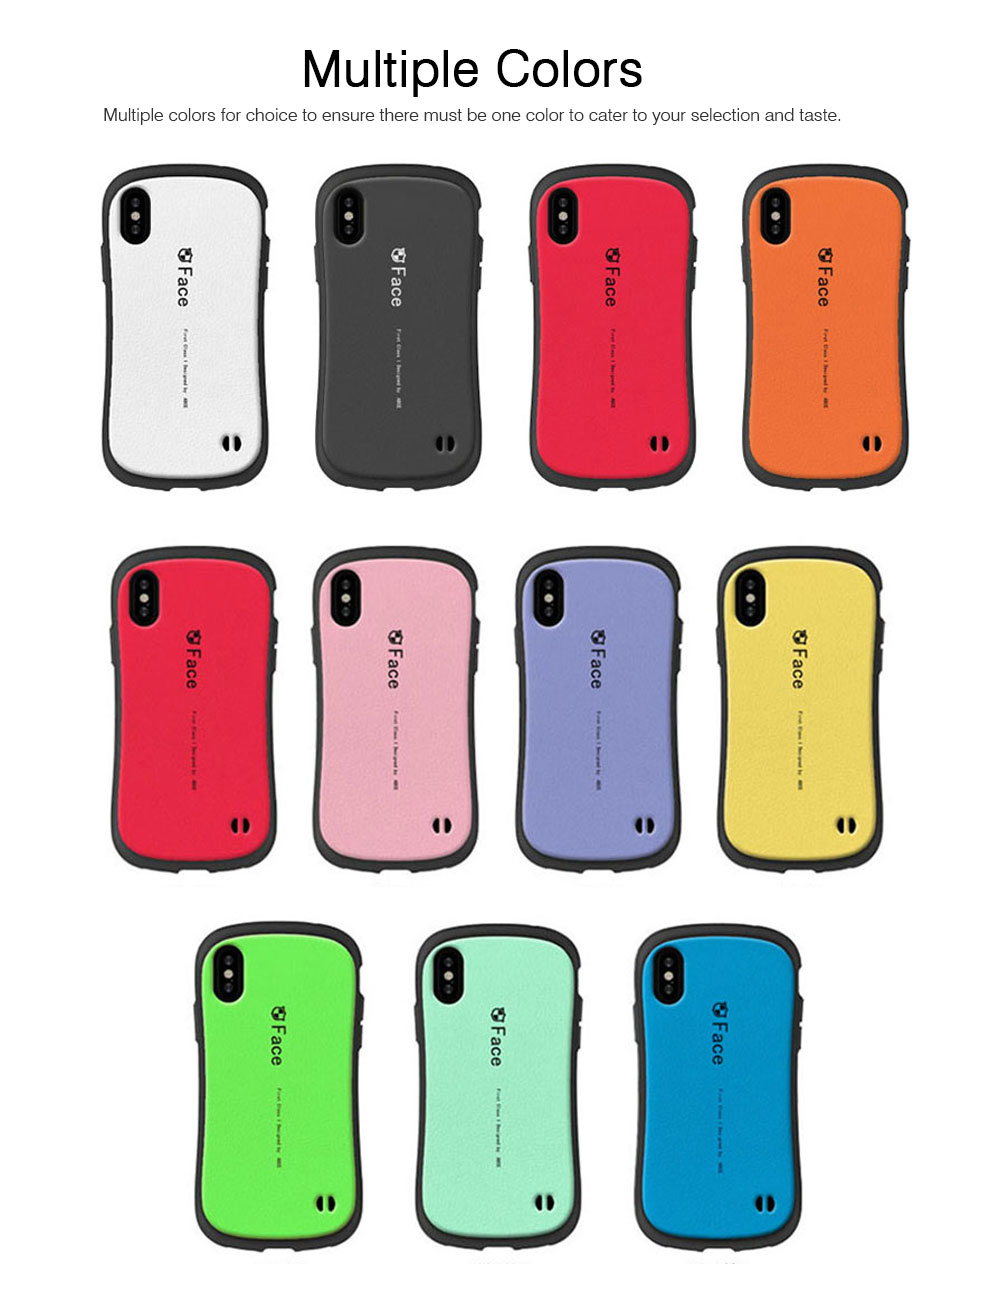 Original iface Mall Phone Case for iPhone X, Silicone Hard Strong Protective Phone Shell, Back Cover for iPhone X, iPhone 10 Slim Fit Shockproof 5